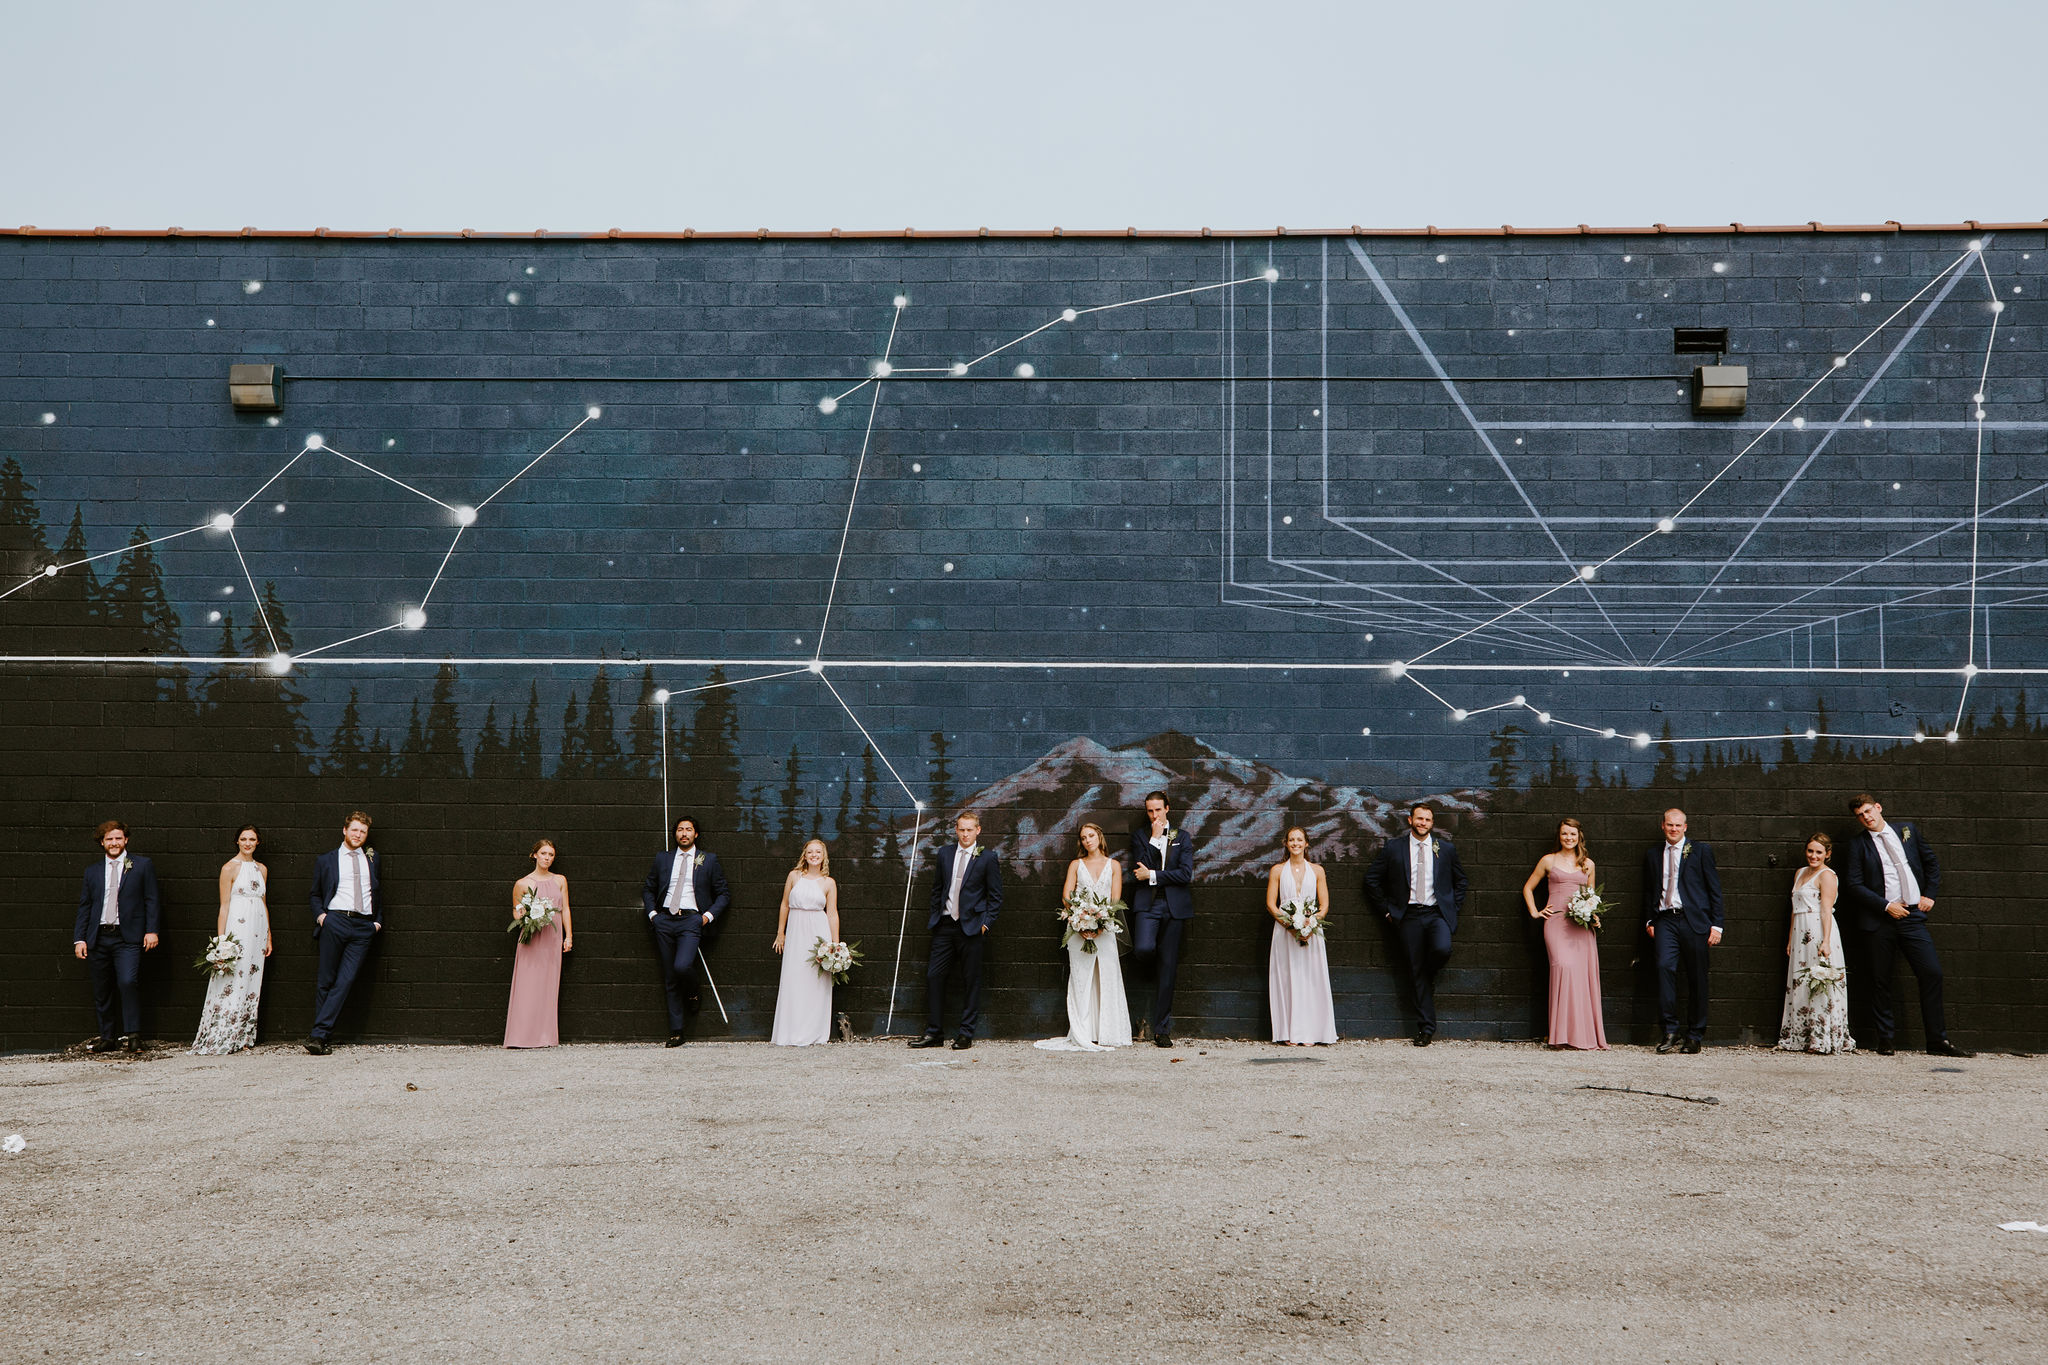 DetroitIndustrialWedding_Geoff&LyndsiPhotography_Alex&Jen_WeddingParty42.jpg